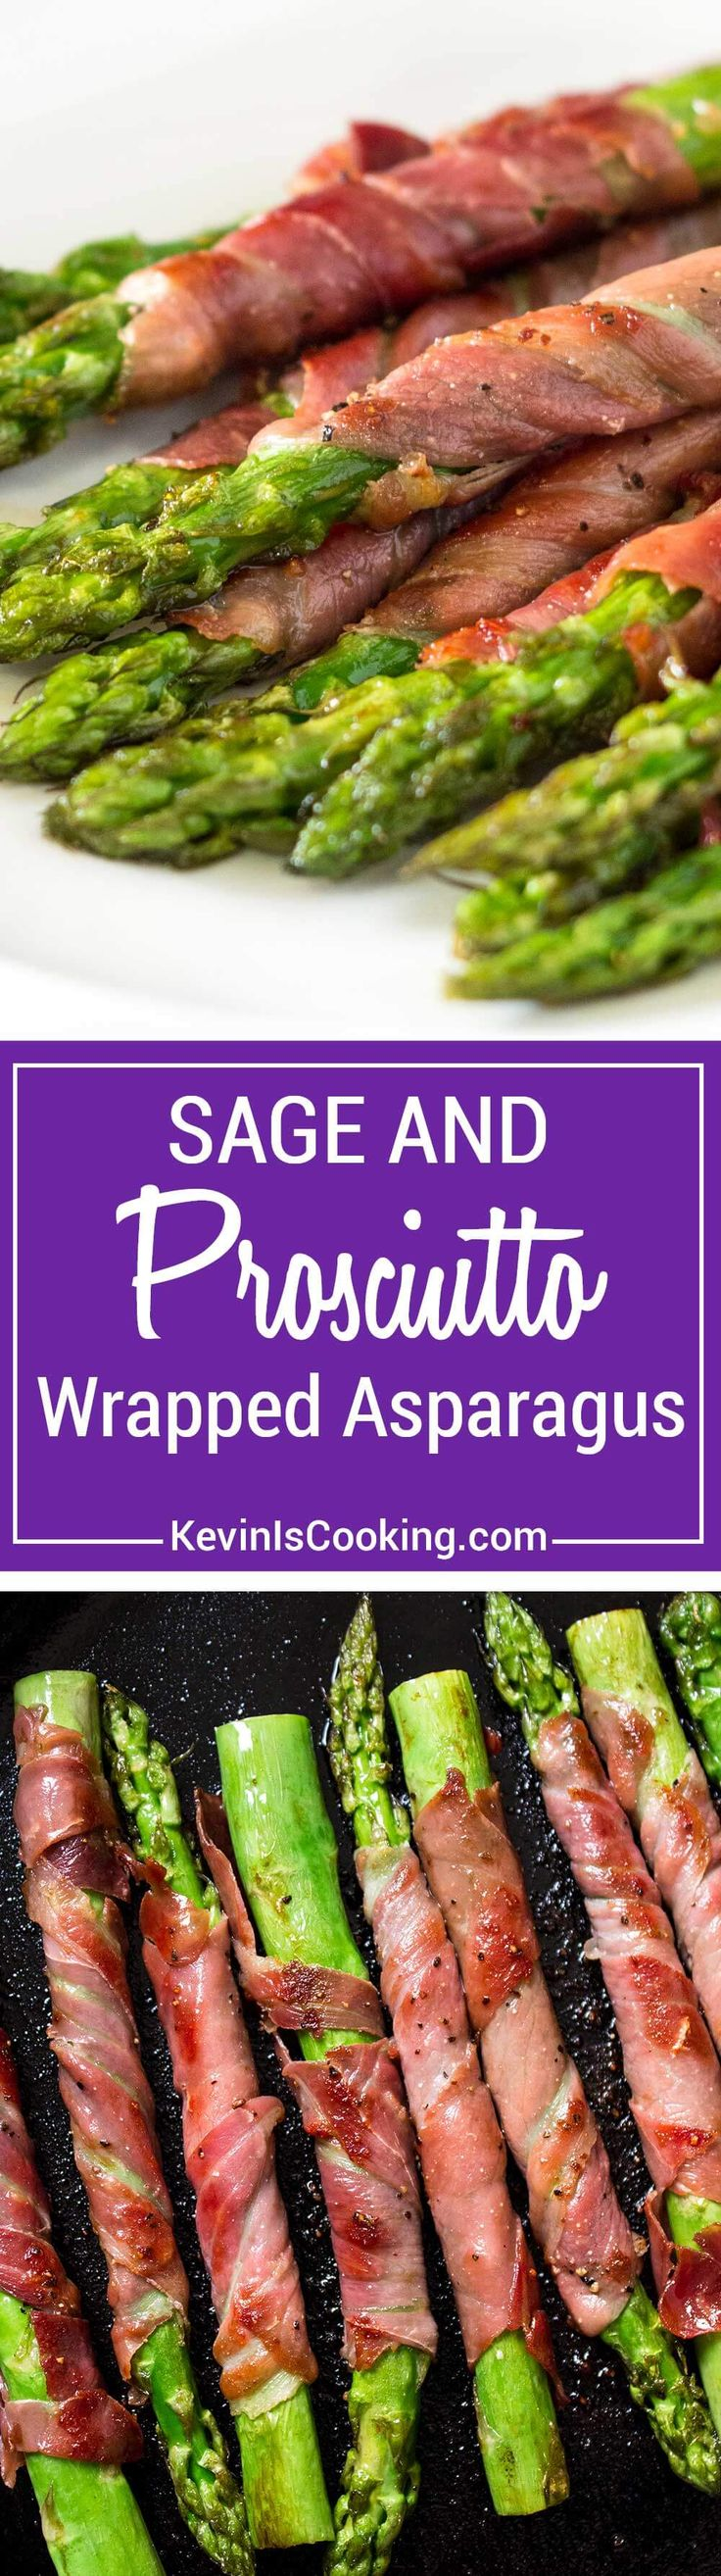 Savory, salty, and crispy, these Asparagus Wrapped in Prosciutto and Sage are such a perfect side dish that can also double as an appetizer. Can't beat that, great for parties and the holidays!